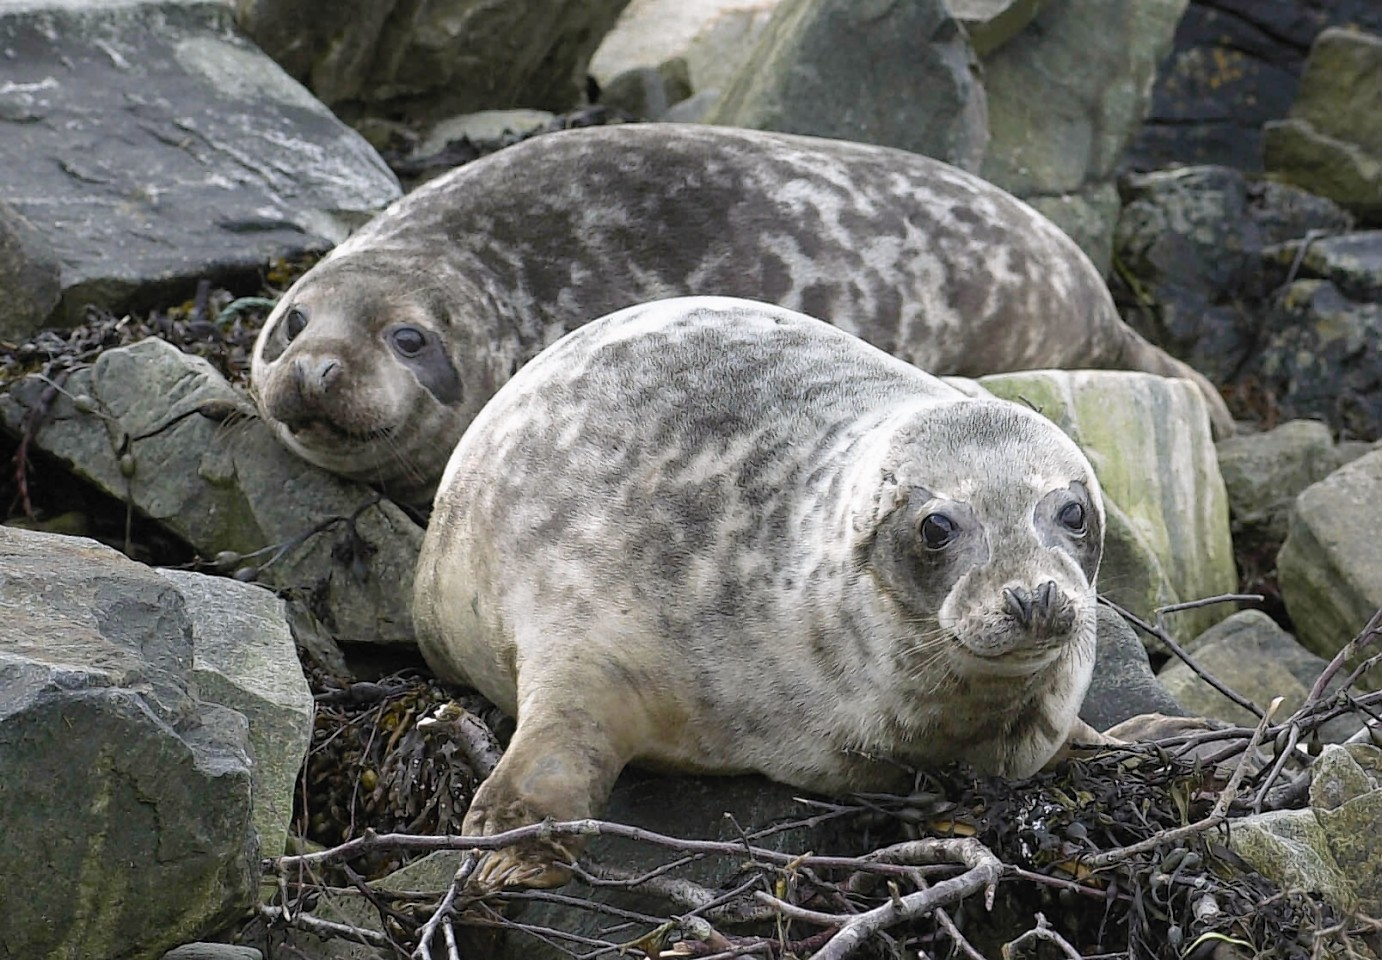 The team investigated the prevalence and origin of salmonella in free-ranging and stranded grey seal pups